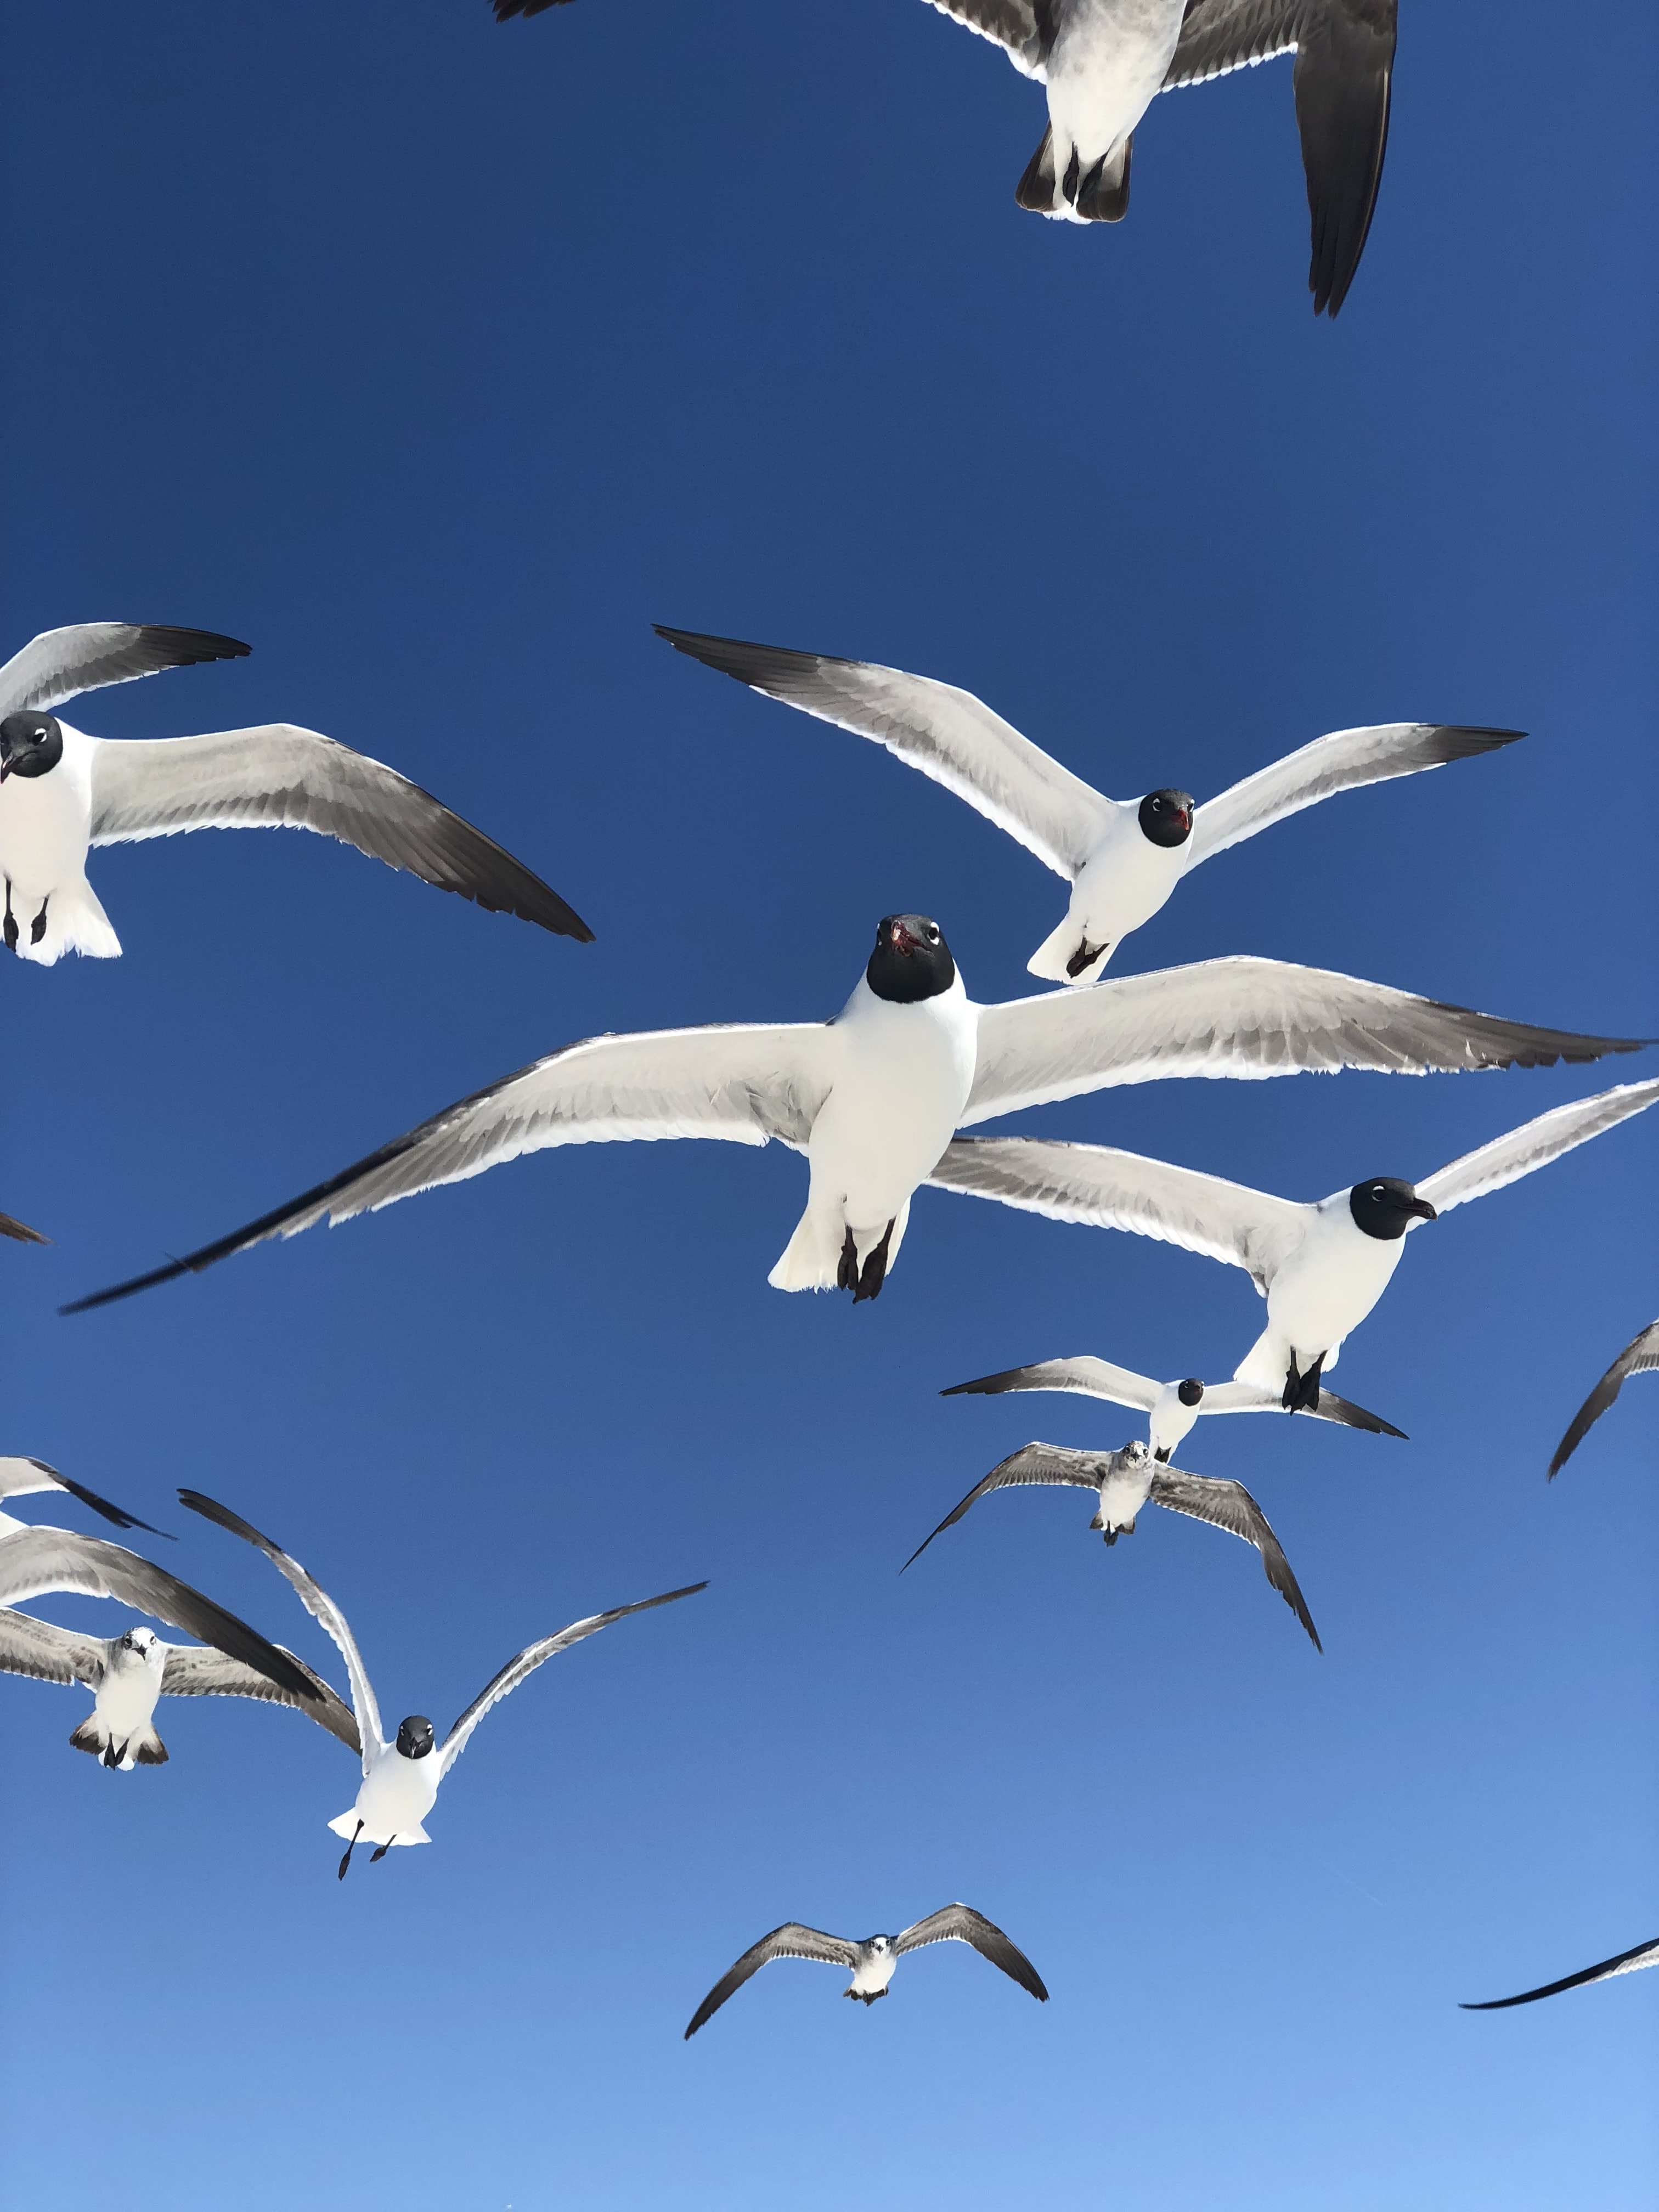 flock of white bird on air